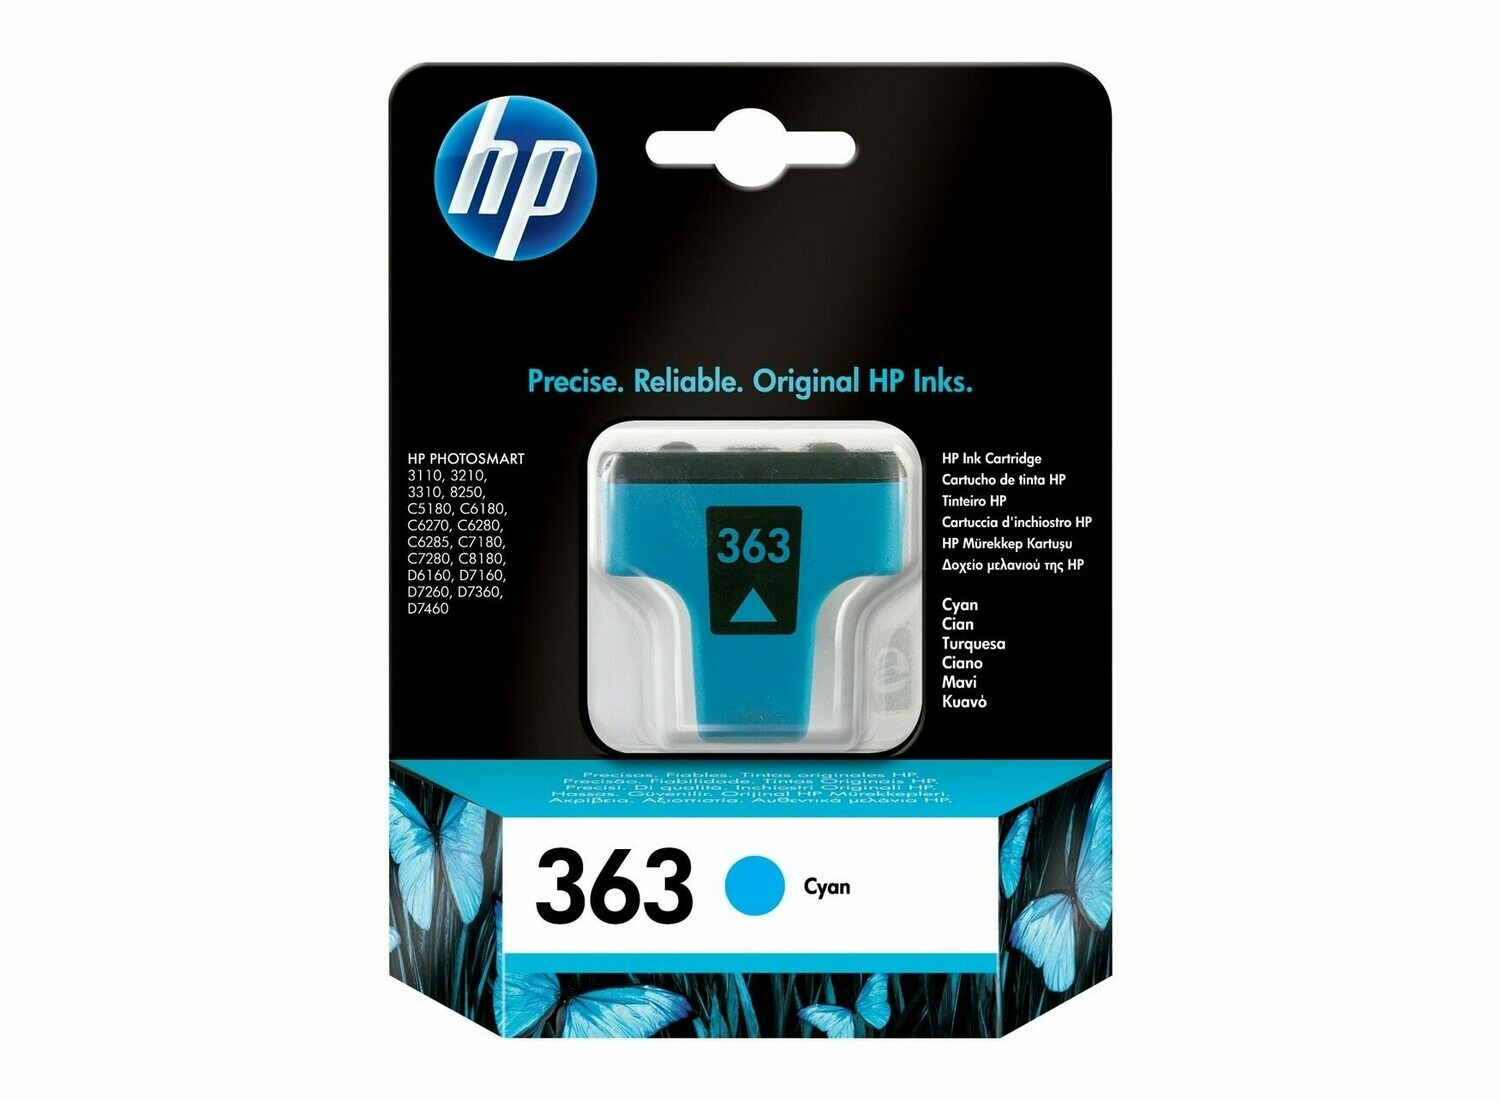 HP 363 CYAN-PRINTS UPTO 400 PAGES